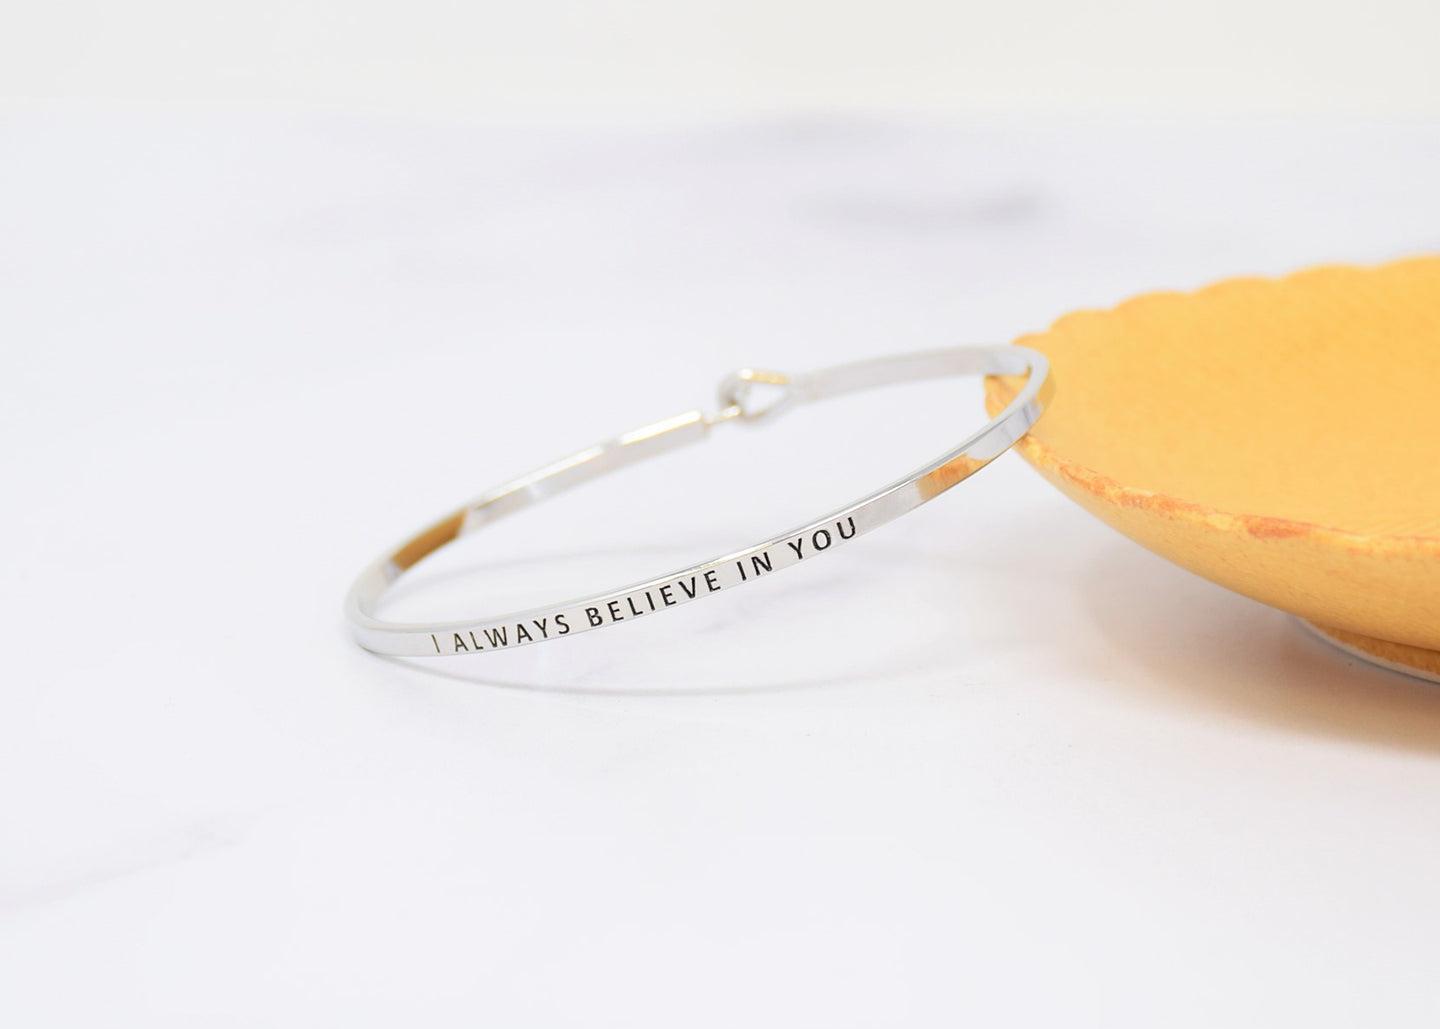 I always believe in you - Bracelet Bangle with Message for Women Girl Daughter Wife Holiday Anniversary Special Gift